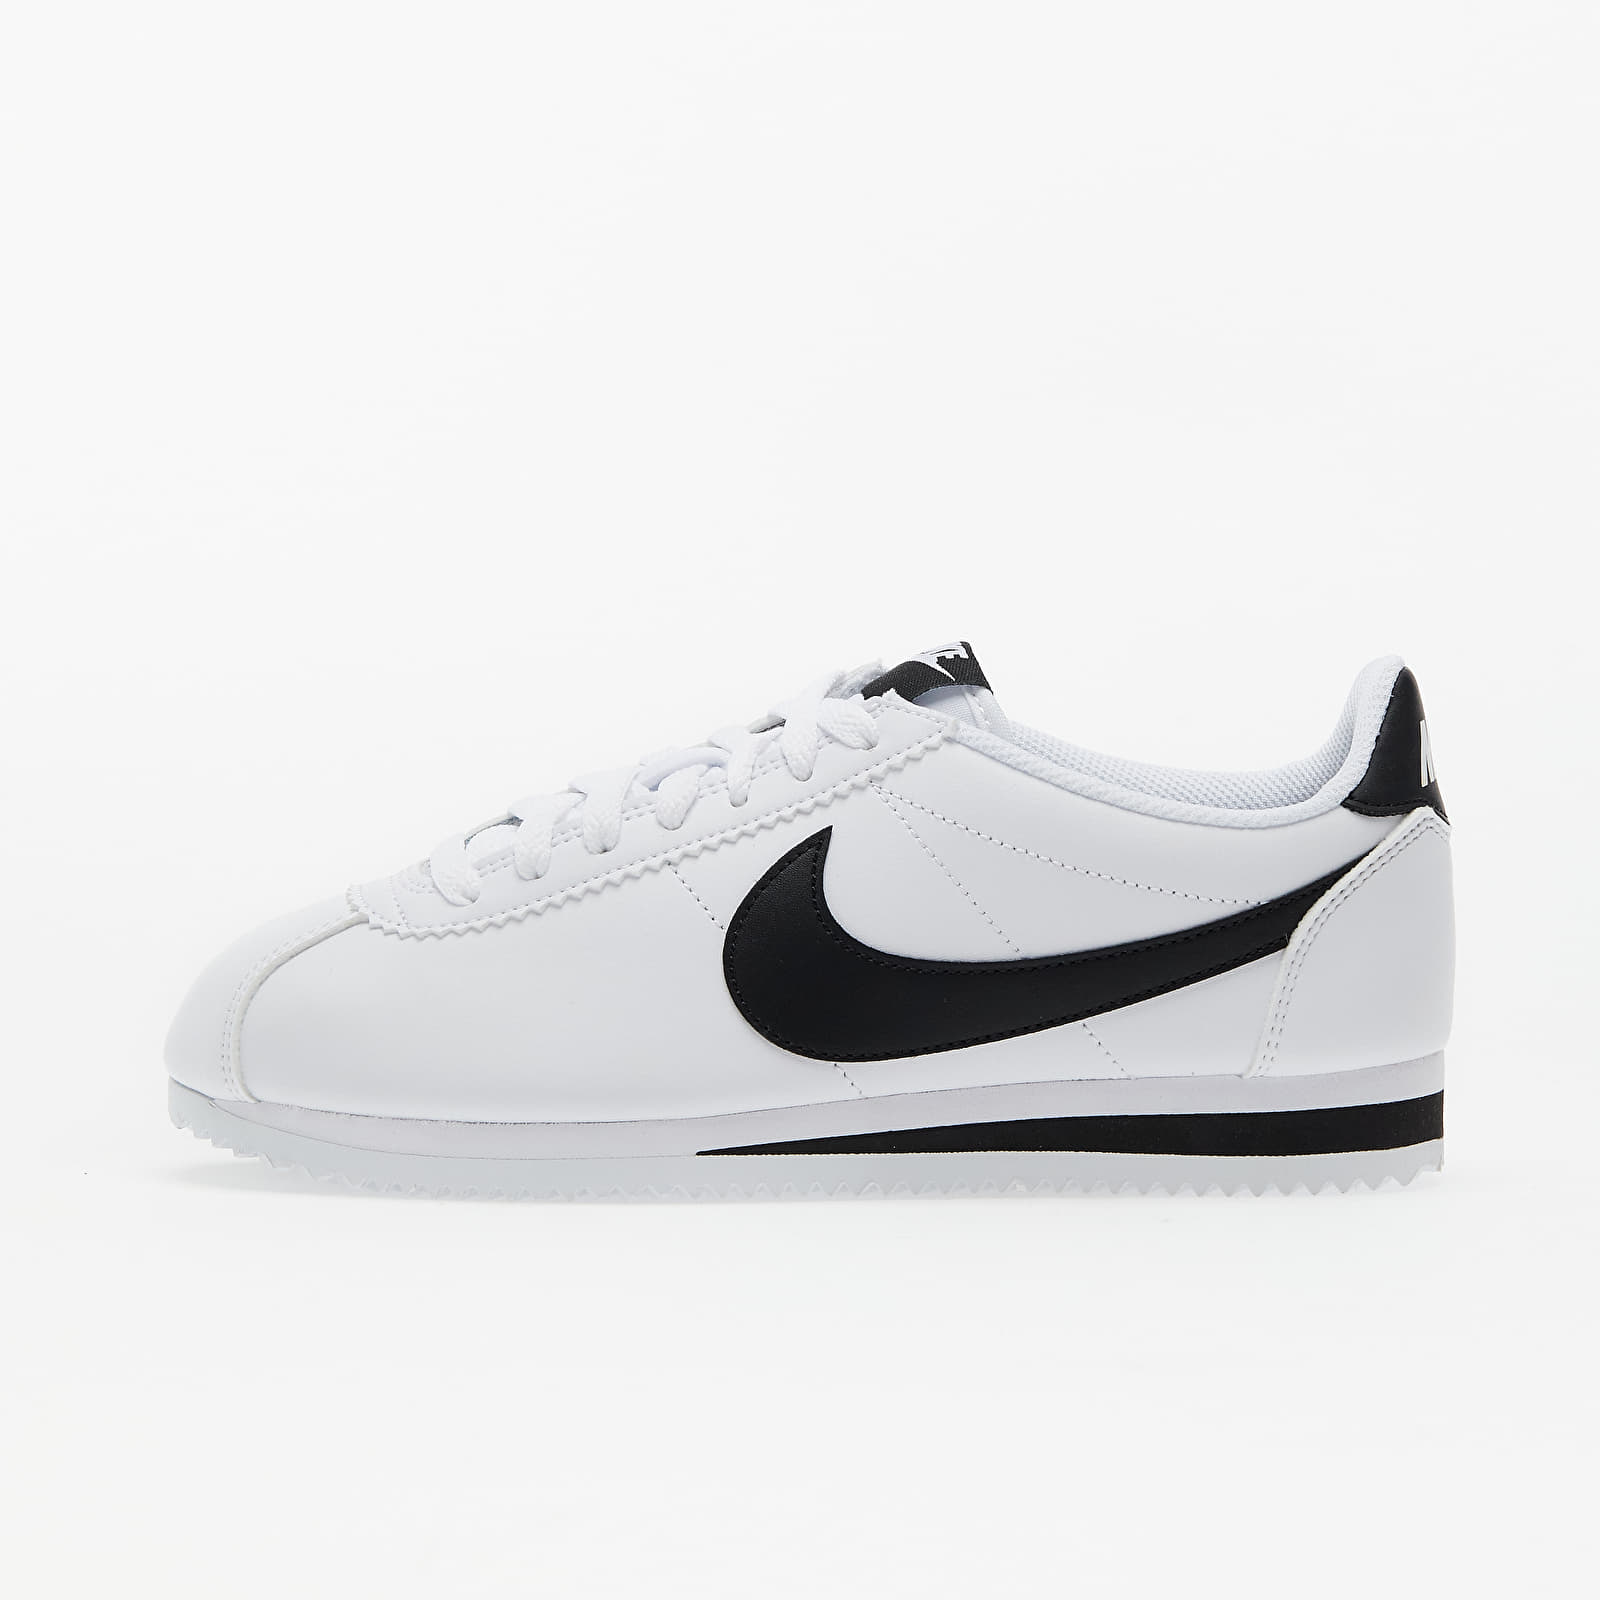 Chaussures et baskets femme Nike Wmns Classic Cortez Leather White/ Black-White